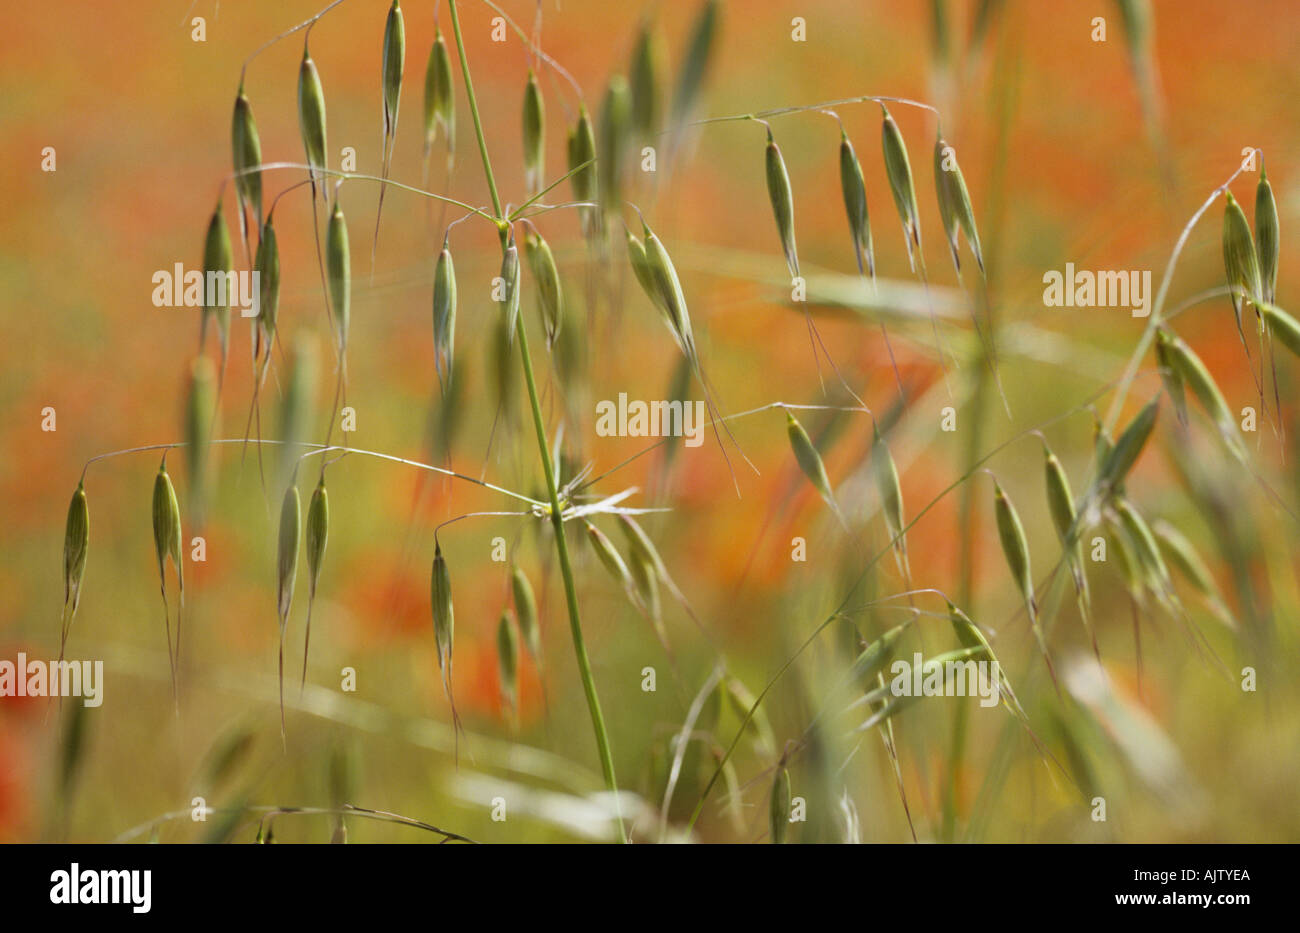 Close up of a stem of Wild oat or Avena fatua in a field with Common poppies or Papaver rhoeas in background Stock Photo